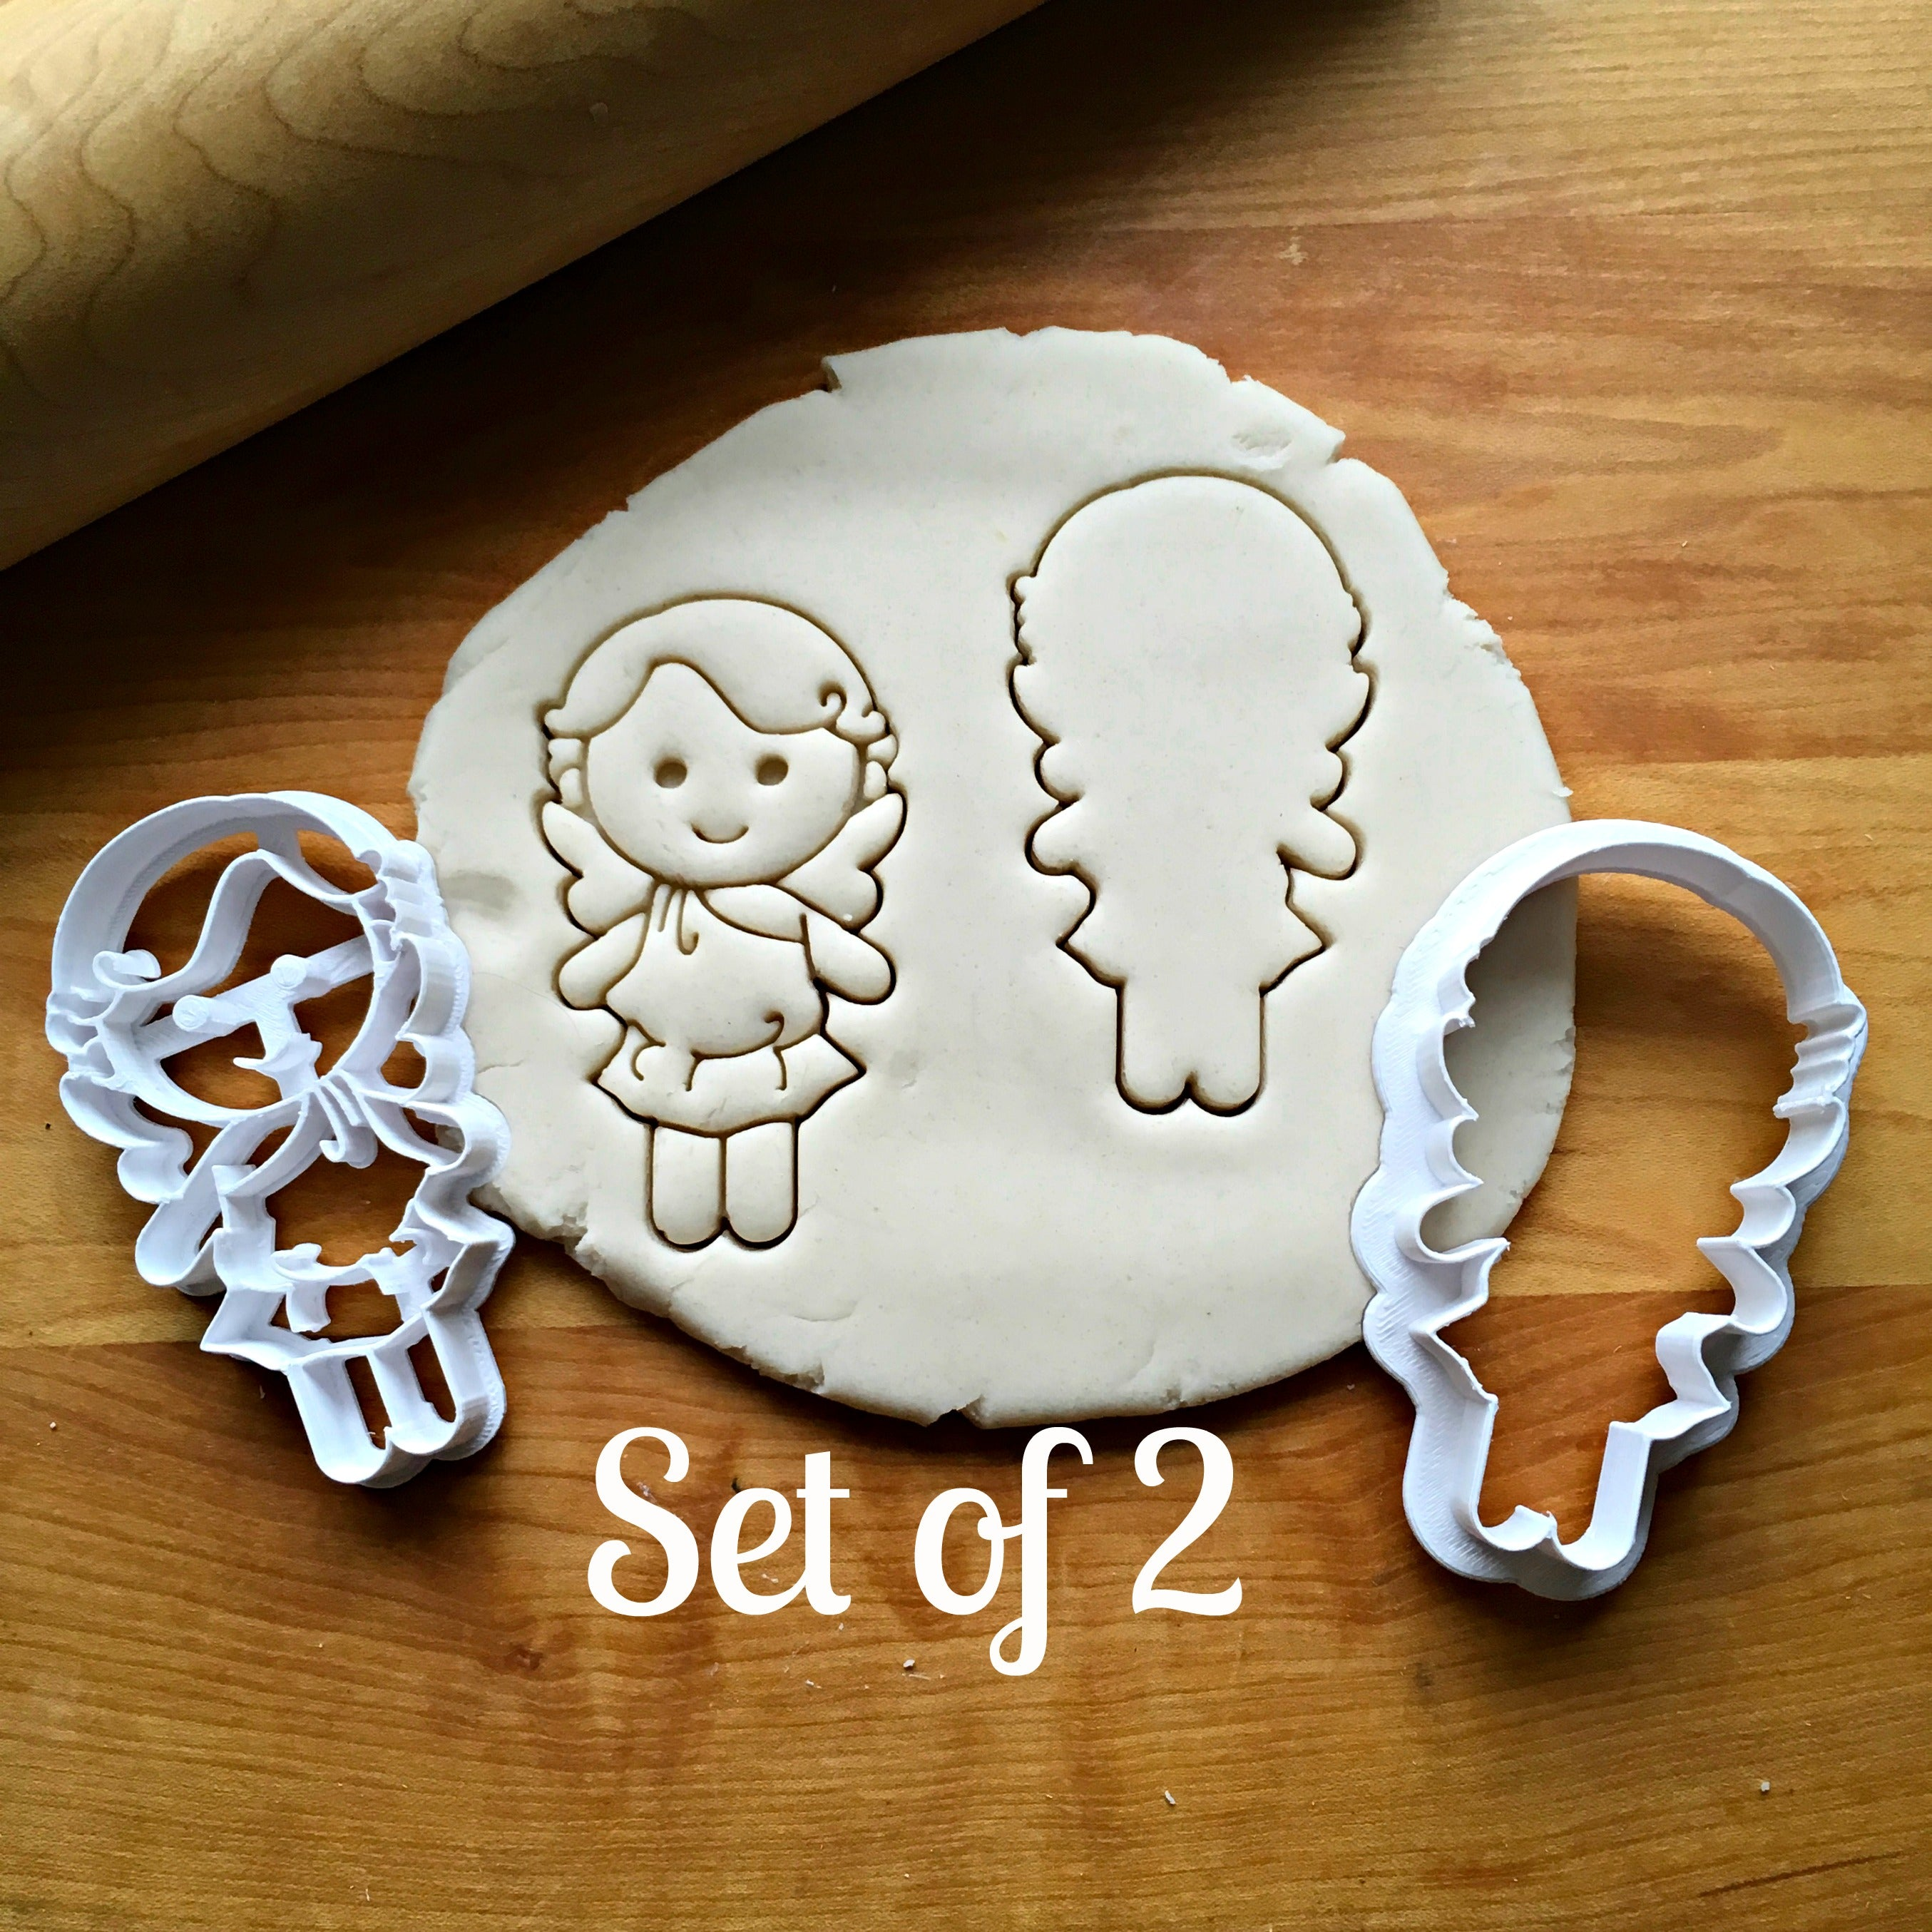 Set of 2 Cupid Cookie Cutters/Dishwasher Safe